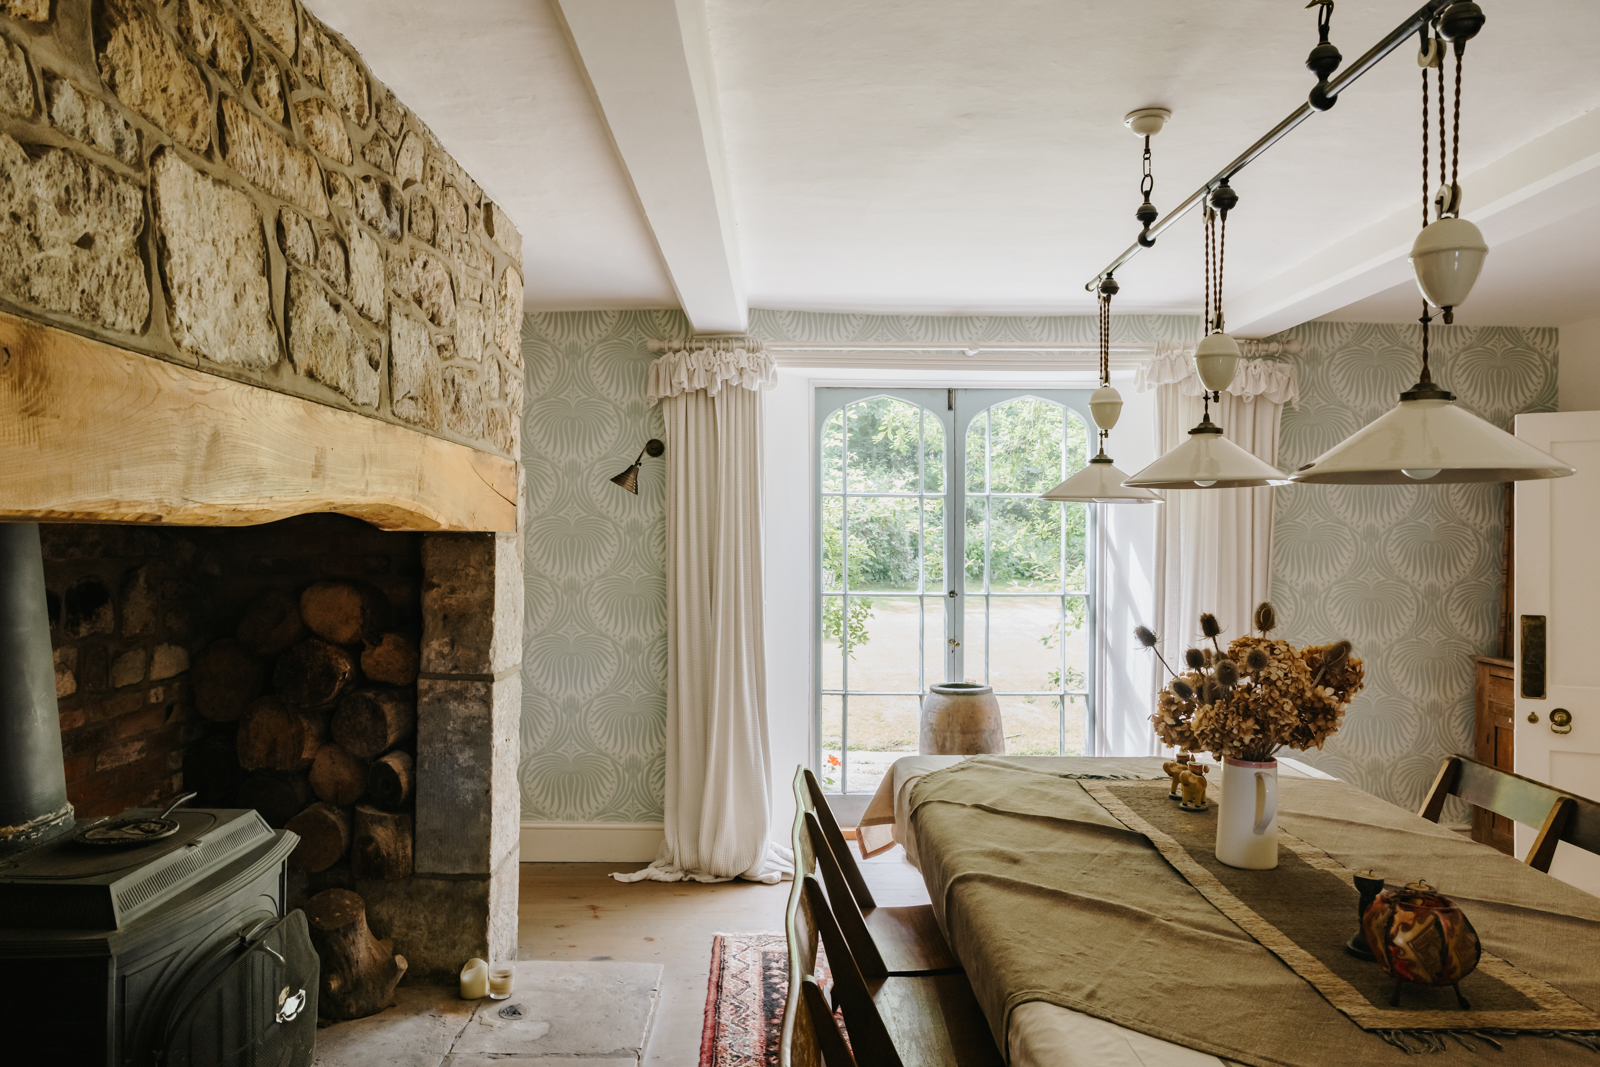 The dining room features french doors that open onto the lawns, as well as a large Inglenook fireplace with woodburning stove